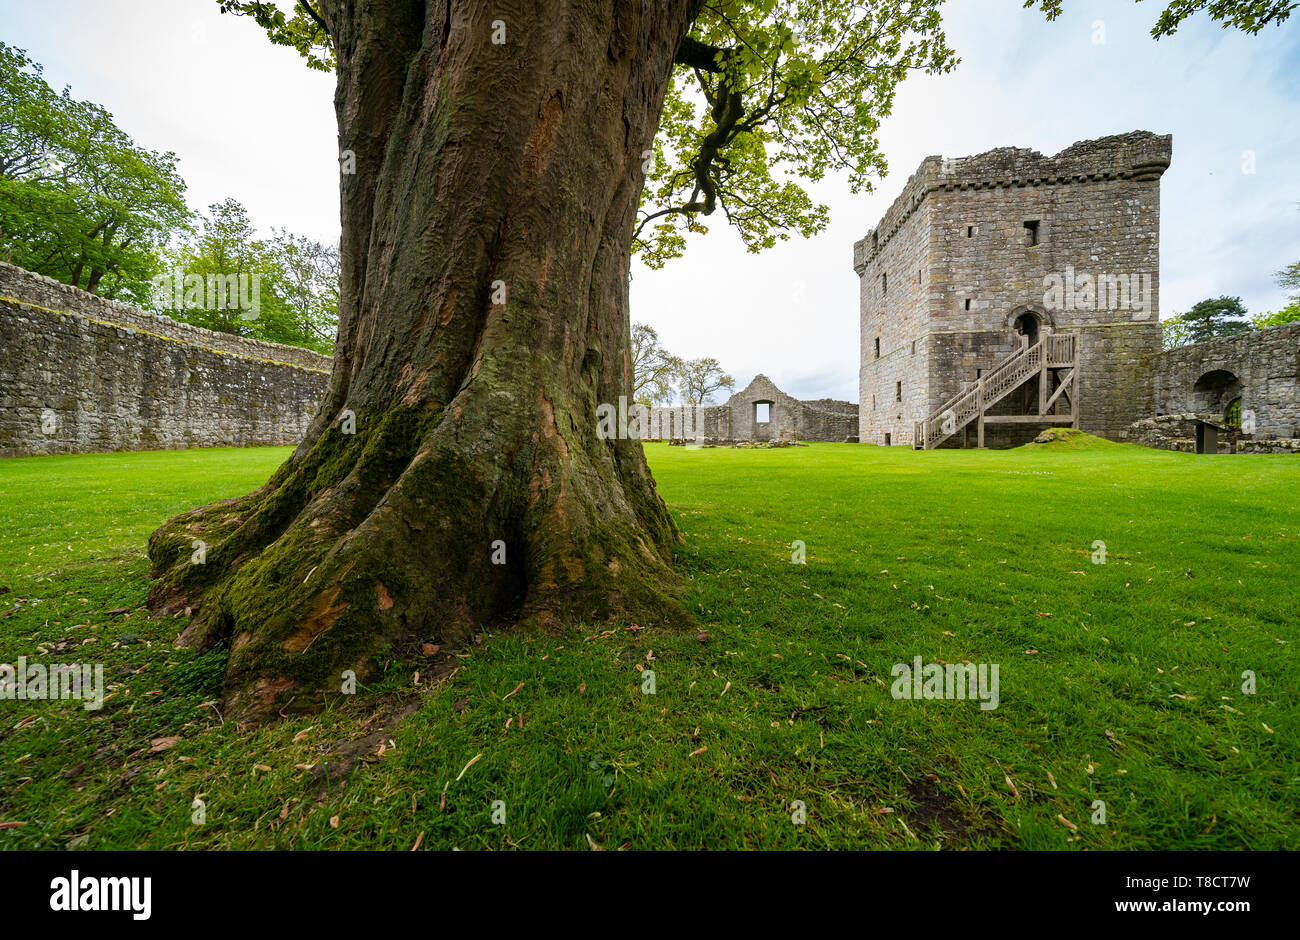 Loch Leven Castle in Scotland, UK - Stock Image